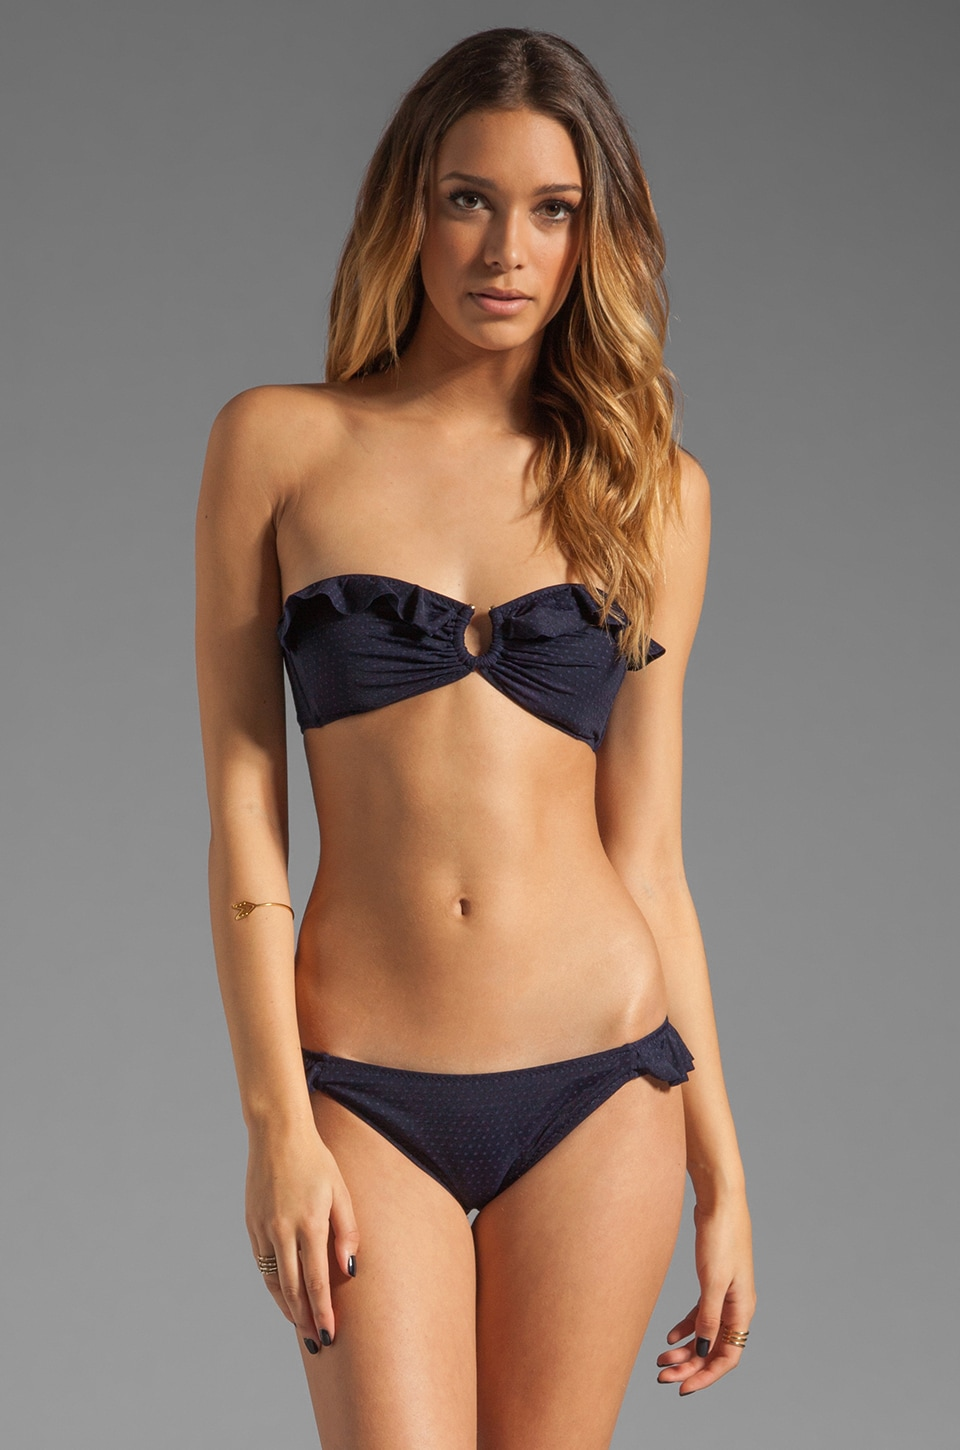 eberjey Moonshadow Mimi Bikini Top in Deep Blue